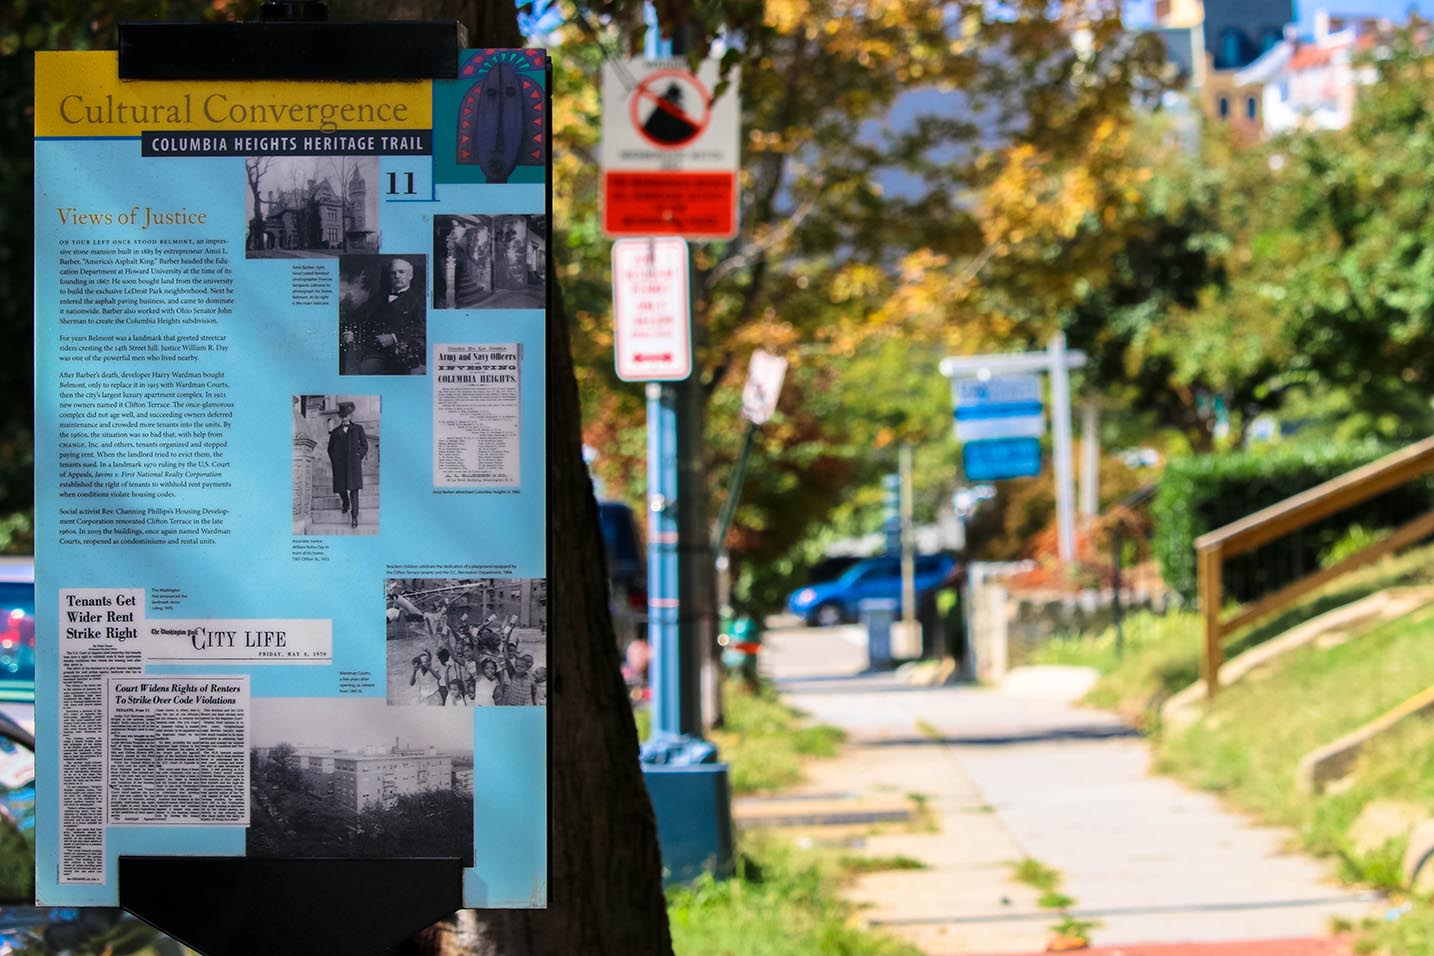 Columbia Heights Heritage Trail in Columbia Heights, Washington, DC